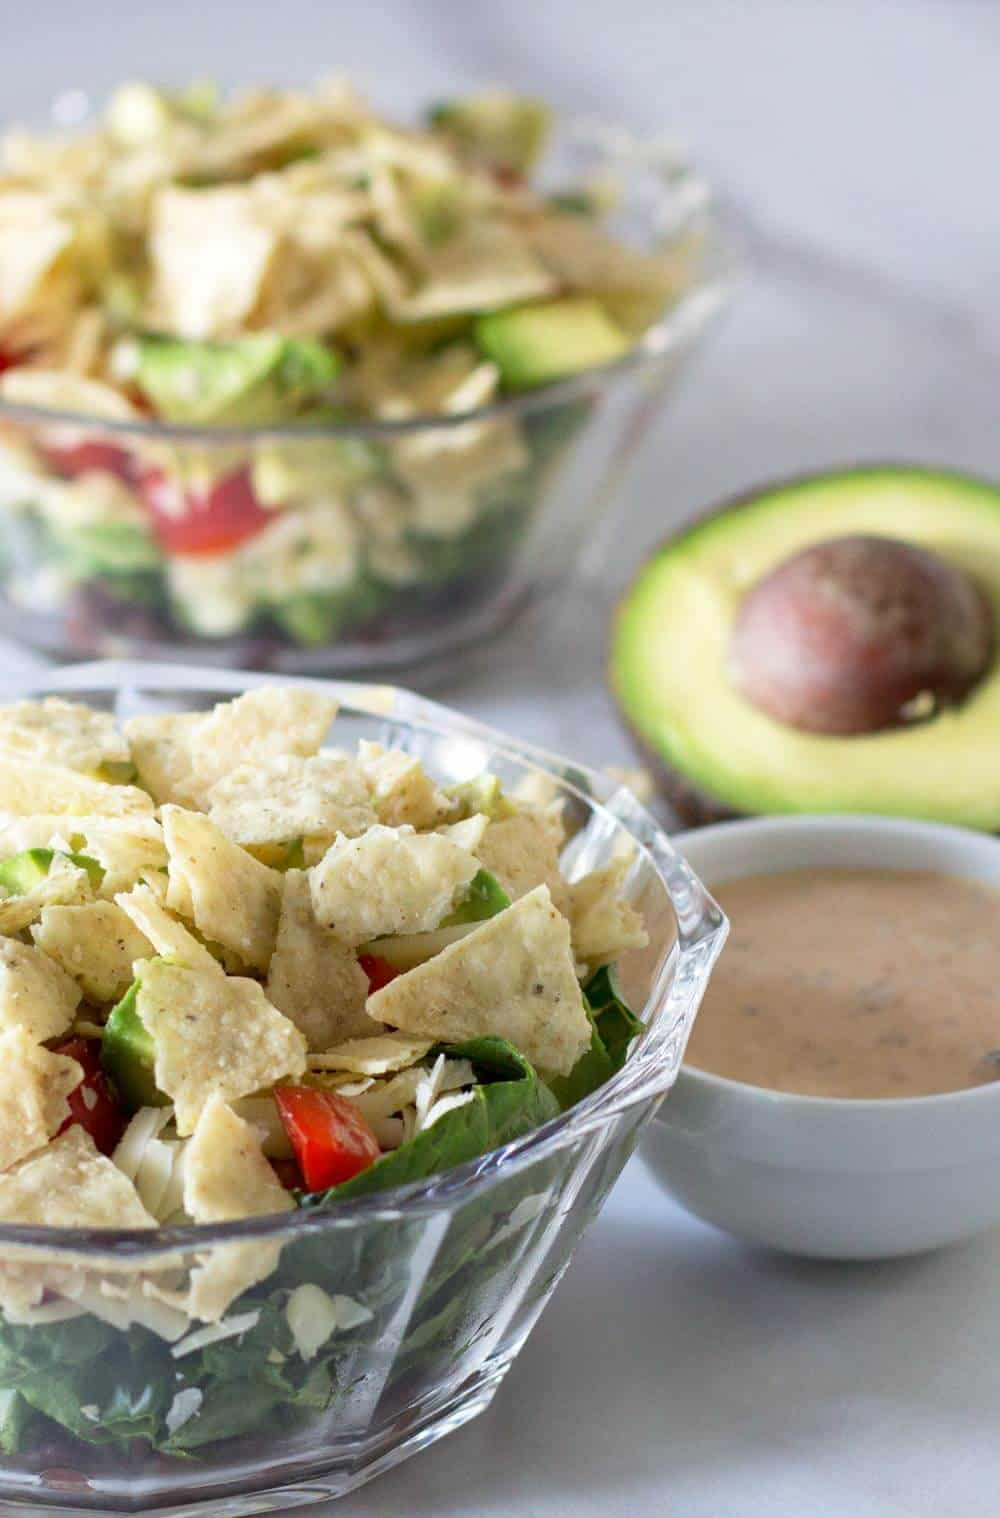 Layered Southwestern Salad with avocado and dressing on the side